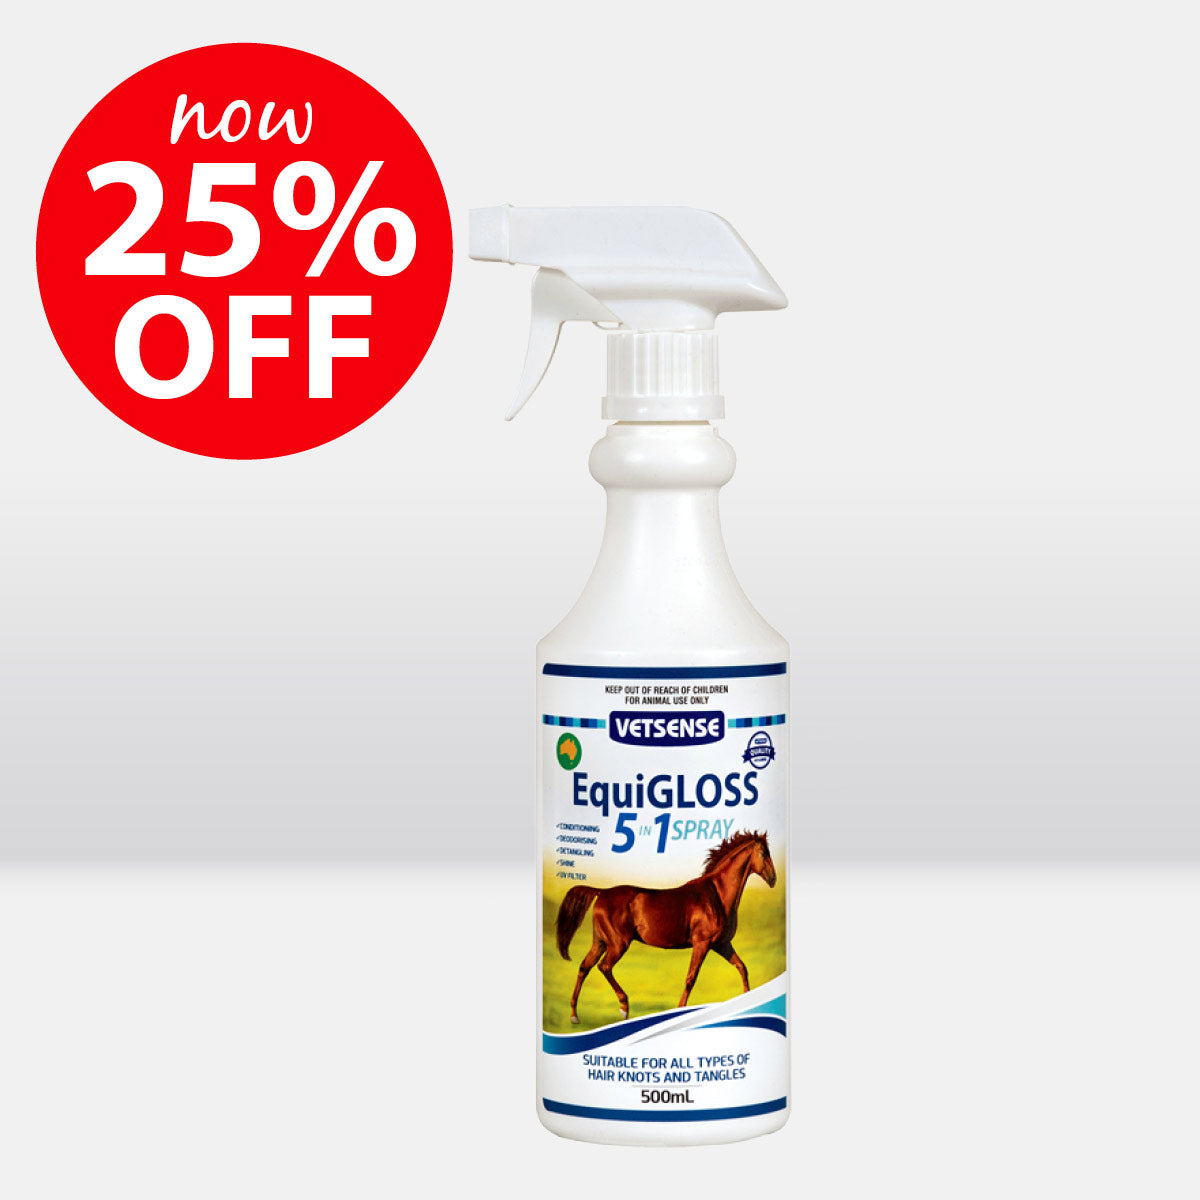 Vetsense EquiGLOSS 5-in-1 Detangling Spray 500mL ON SALE NOW